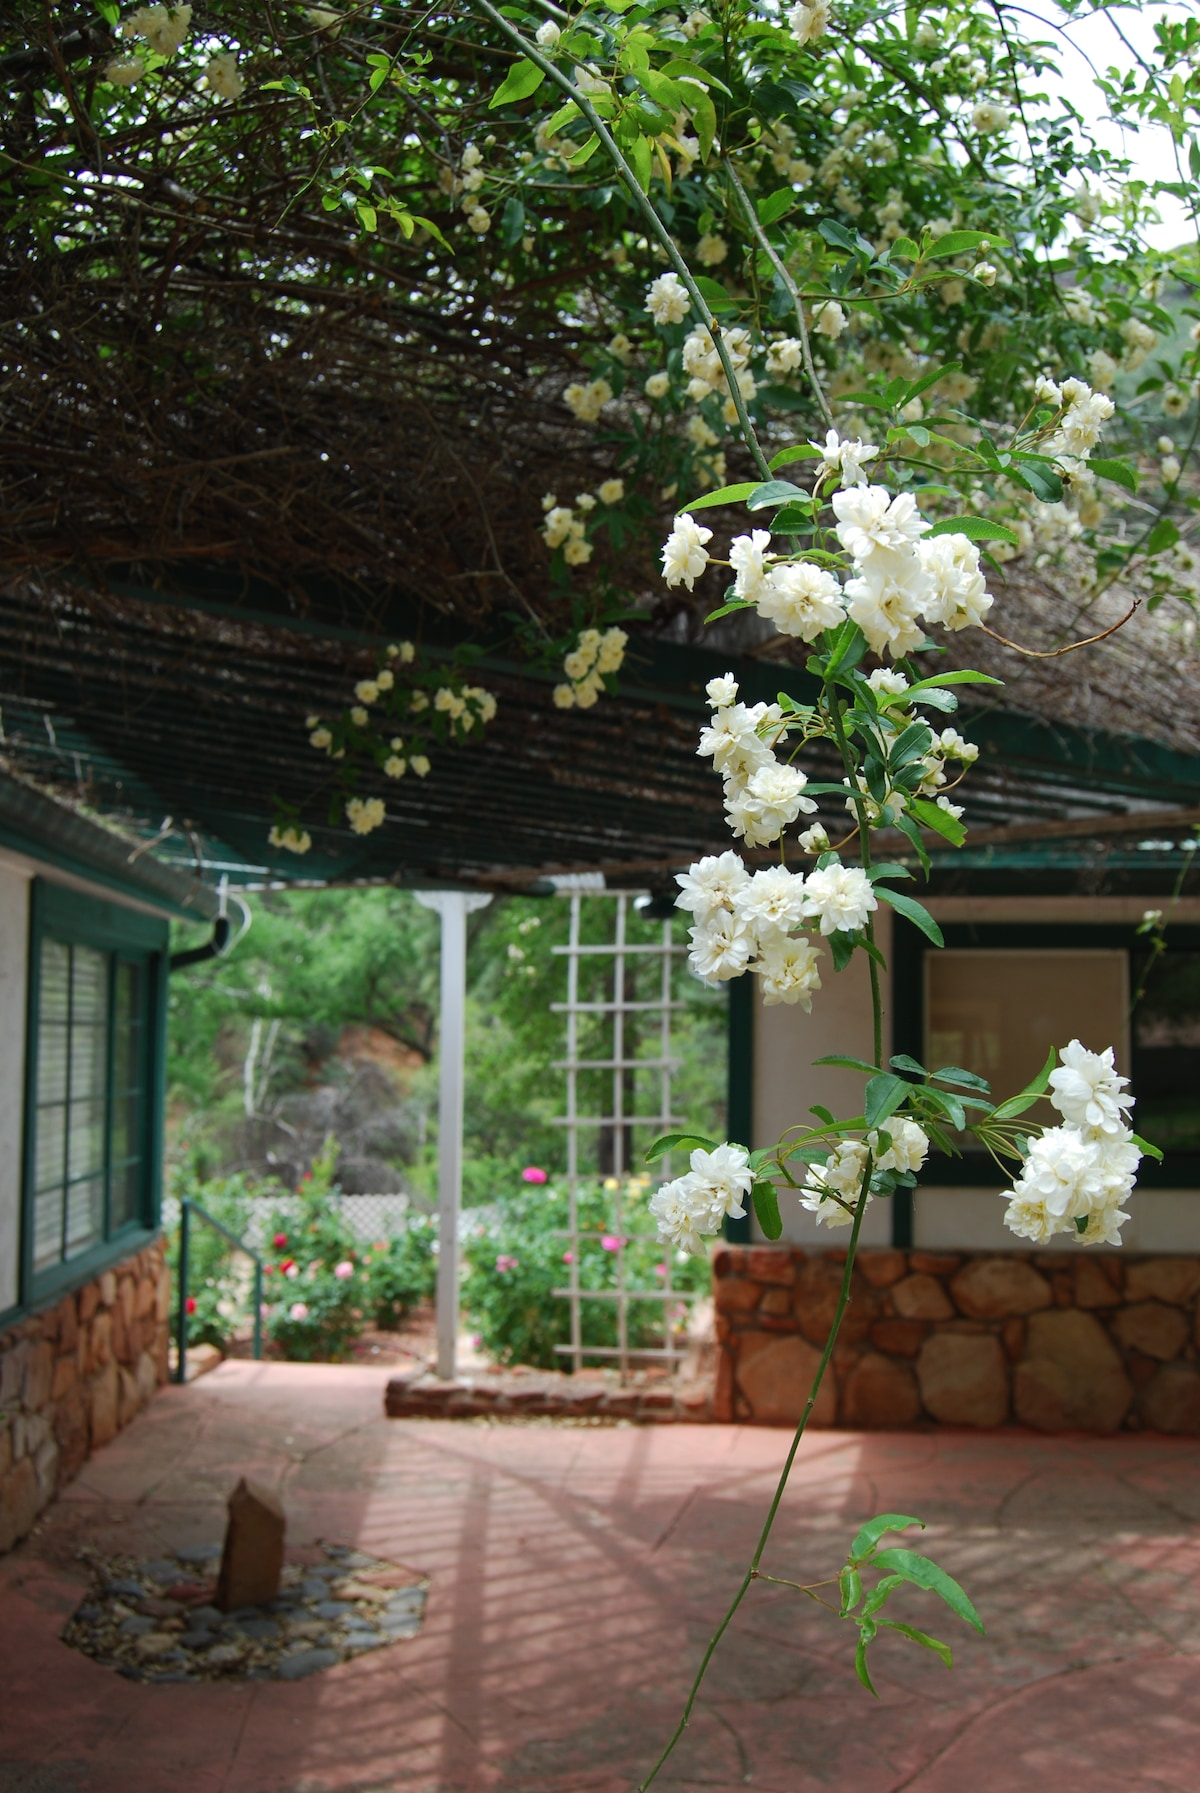 A view to the backyard rose garden